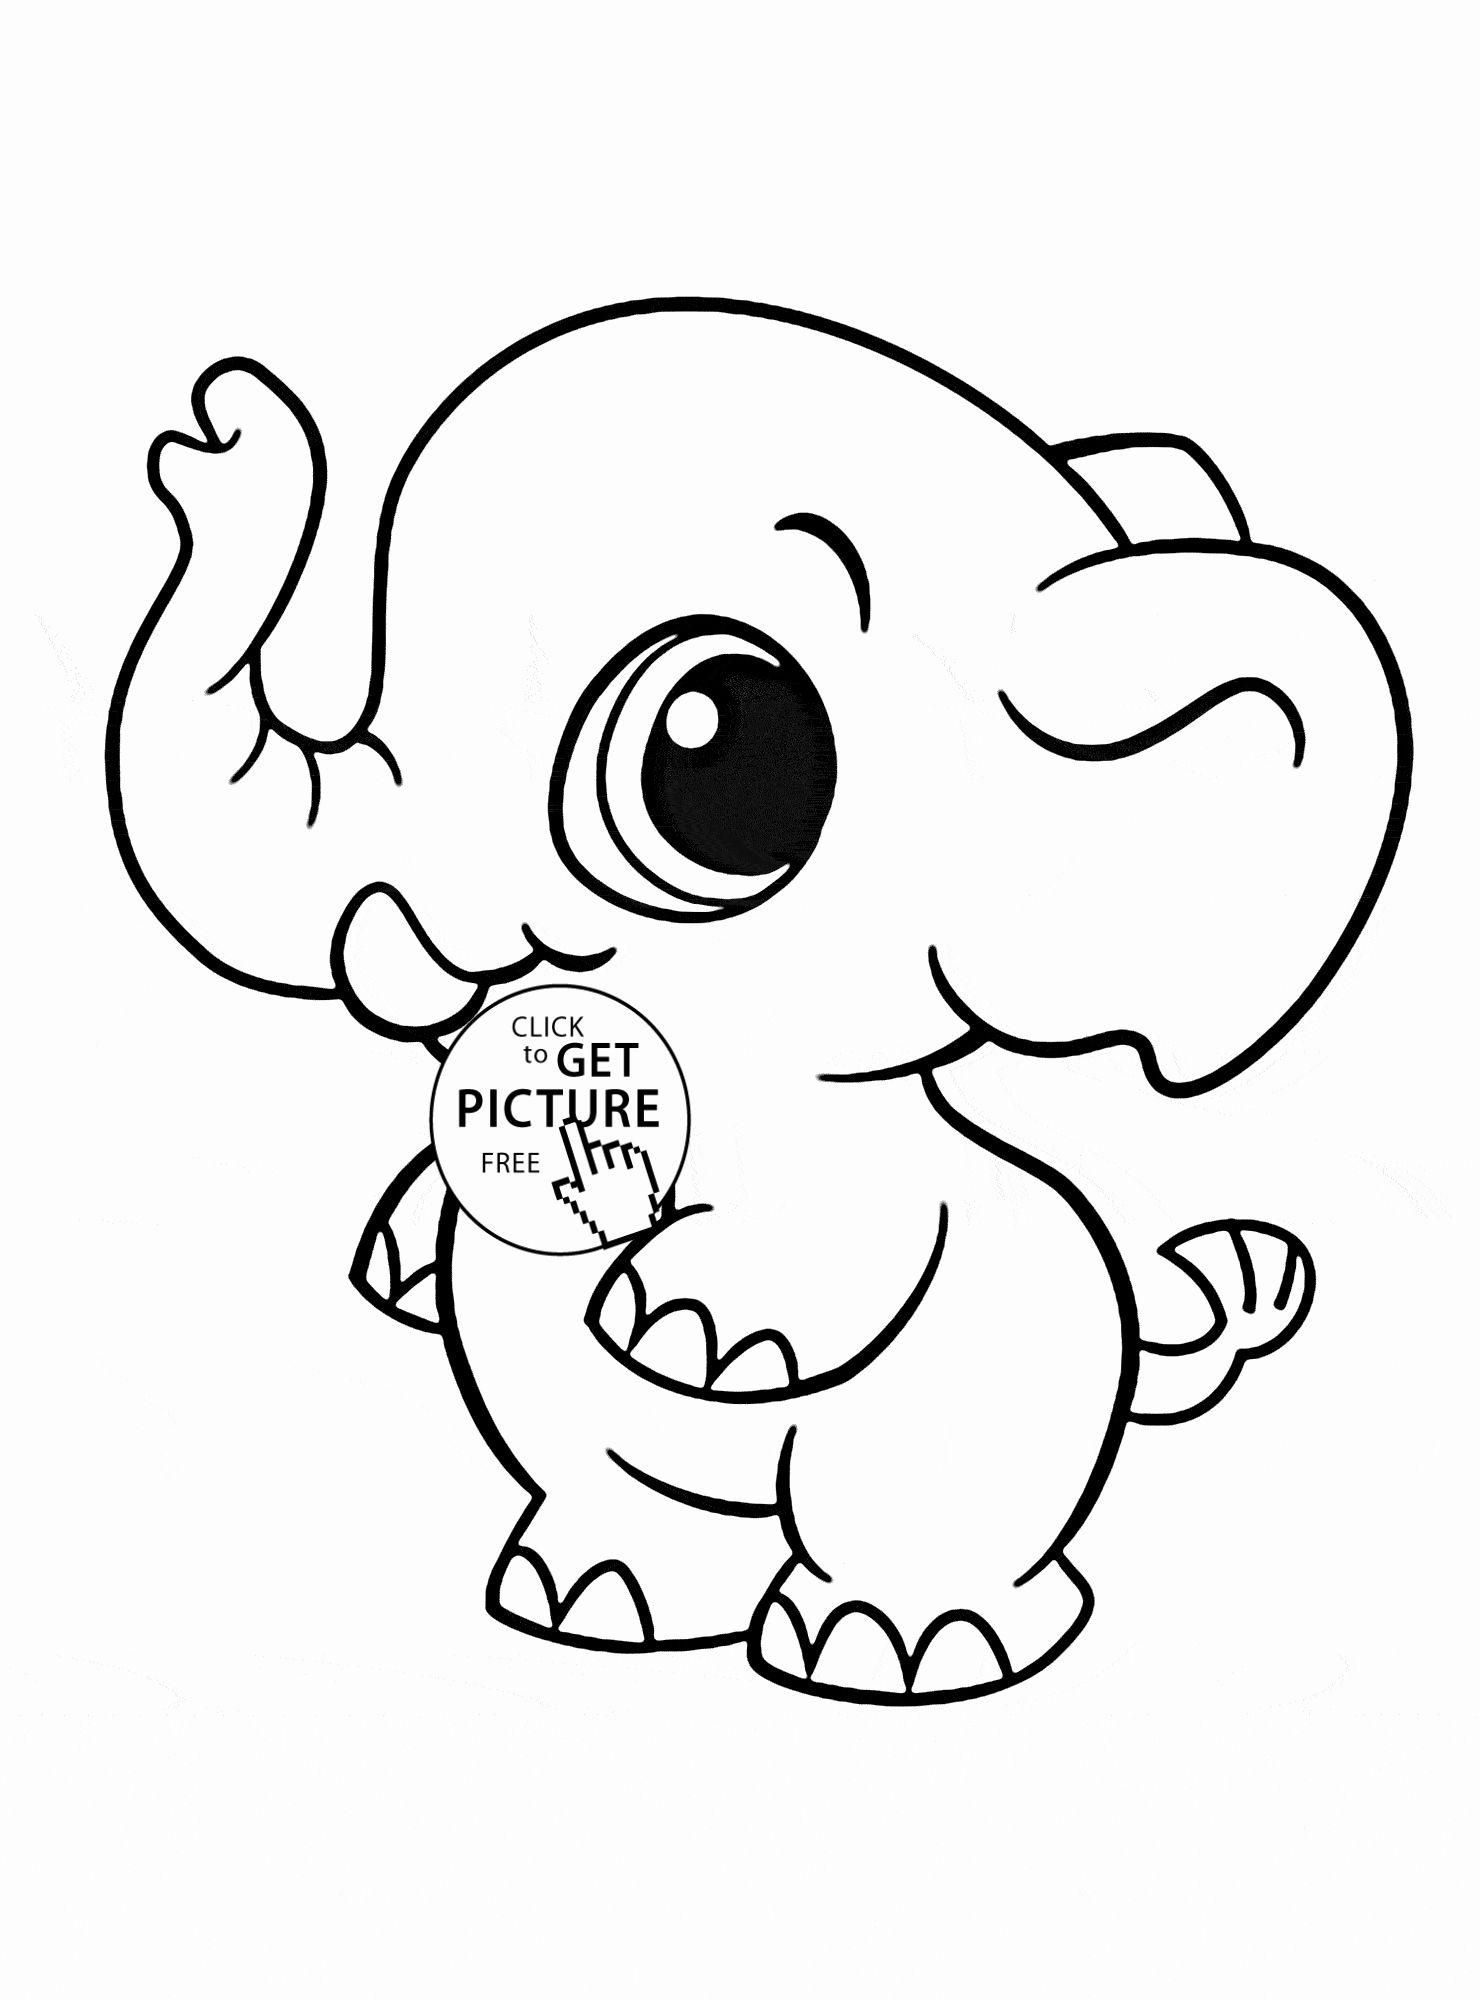 Fun Kids Coloring Pages Inspirational Funny Animals Coloring Page Cute Dog Coloring Pag Zoo Animal Coloring Pages Unicorn Coloring Pages Elephant Coloring Page